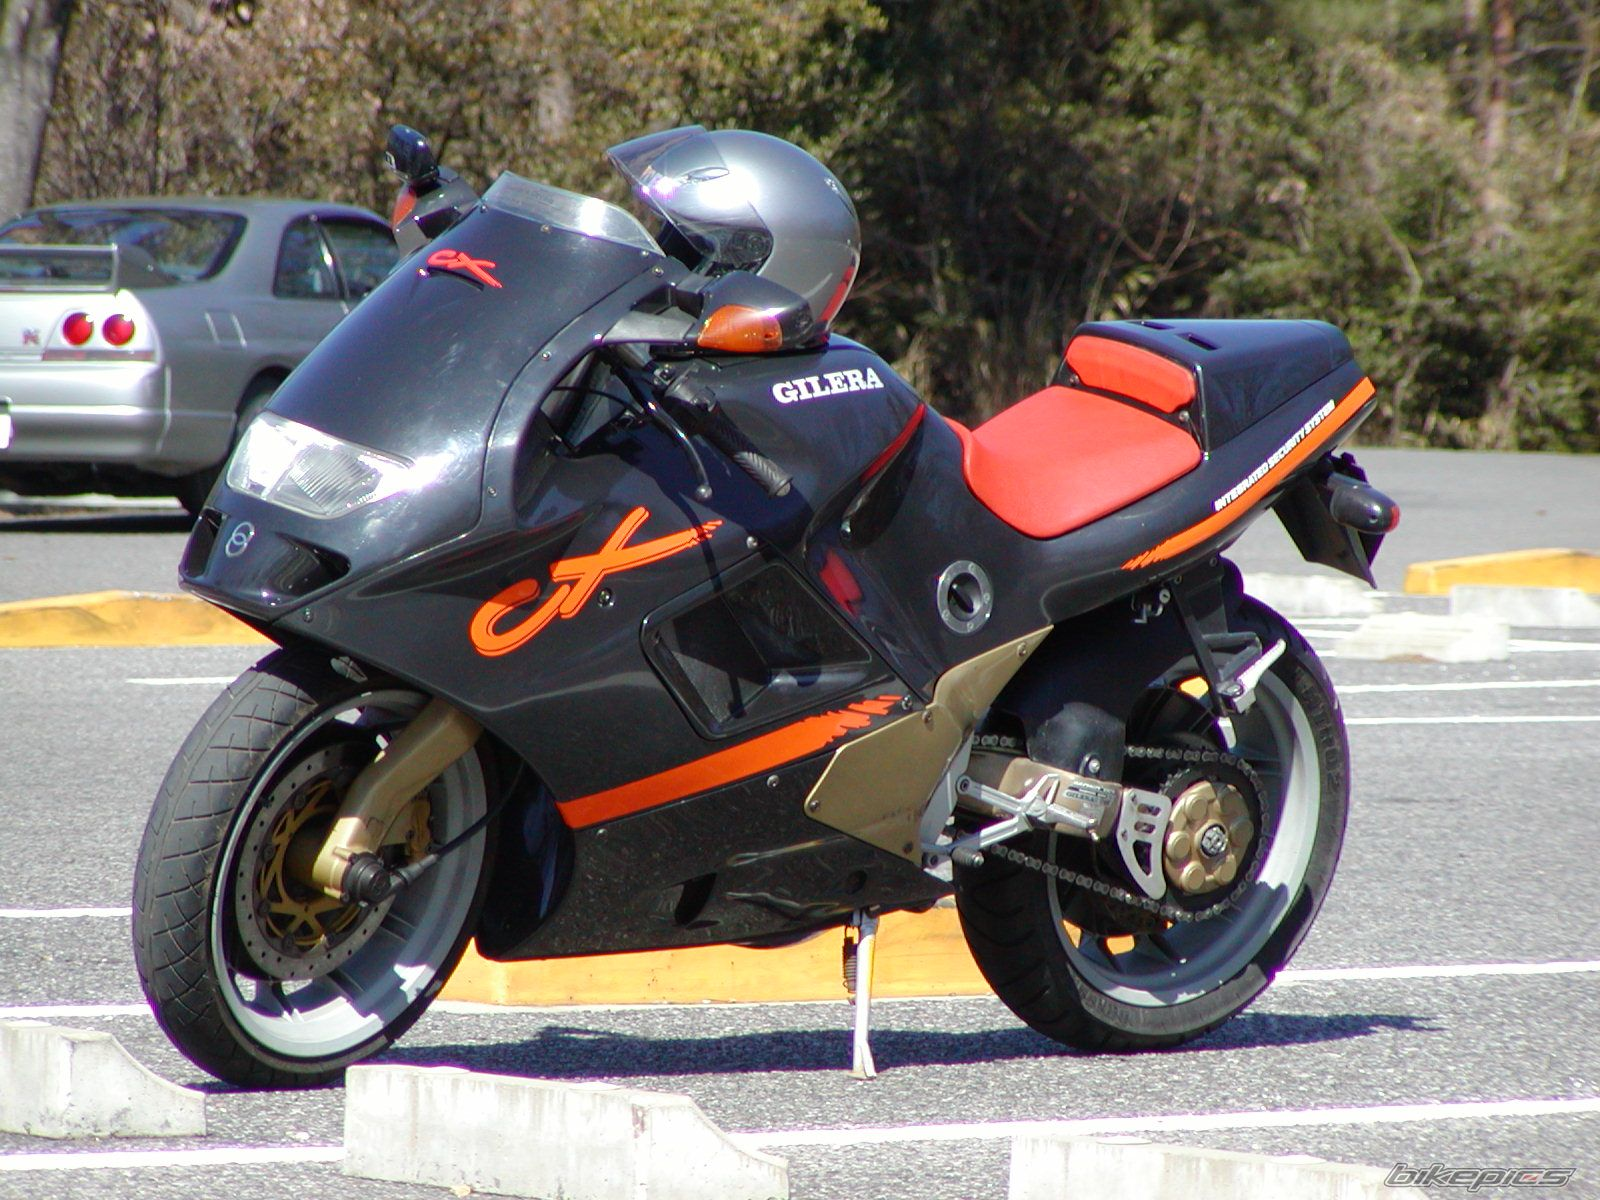 1995 GILERA CX 125 | Picture 925220 motorcycle photo